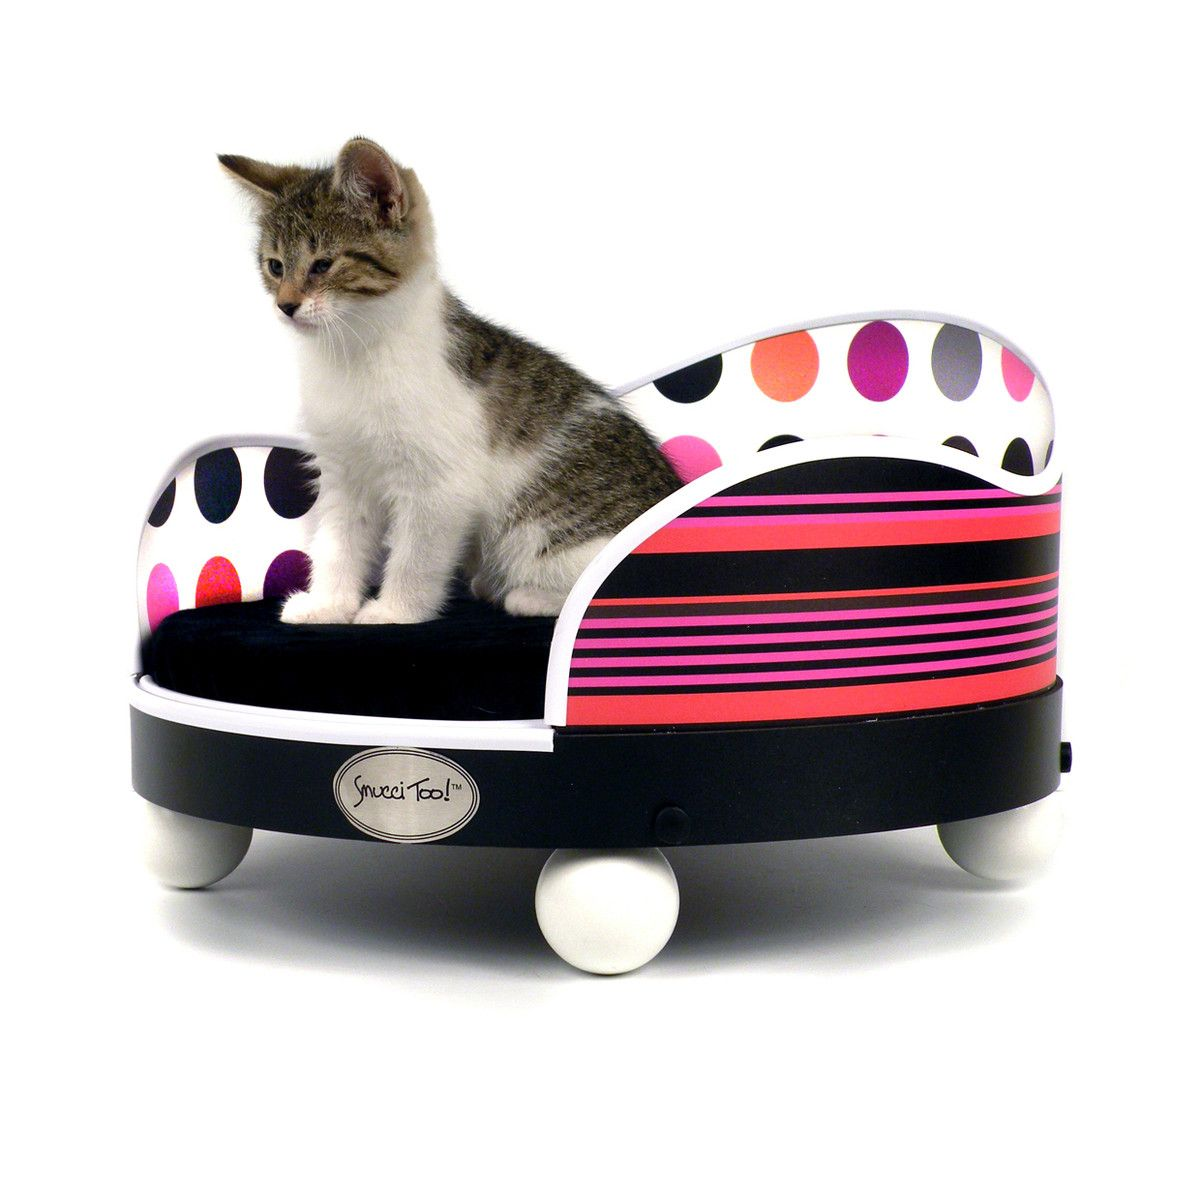 Pet Bed by Smucci Too